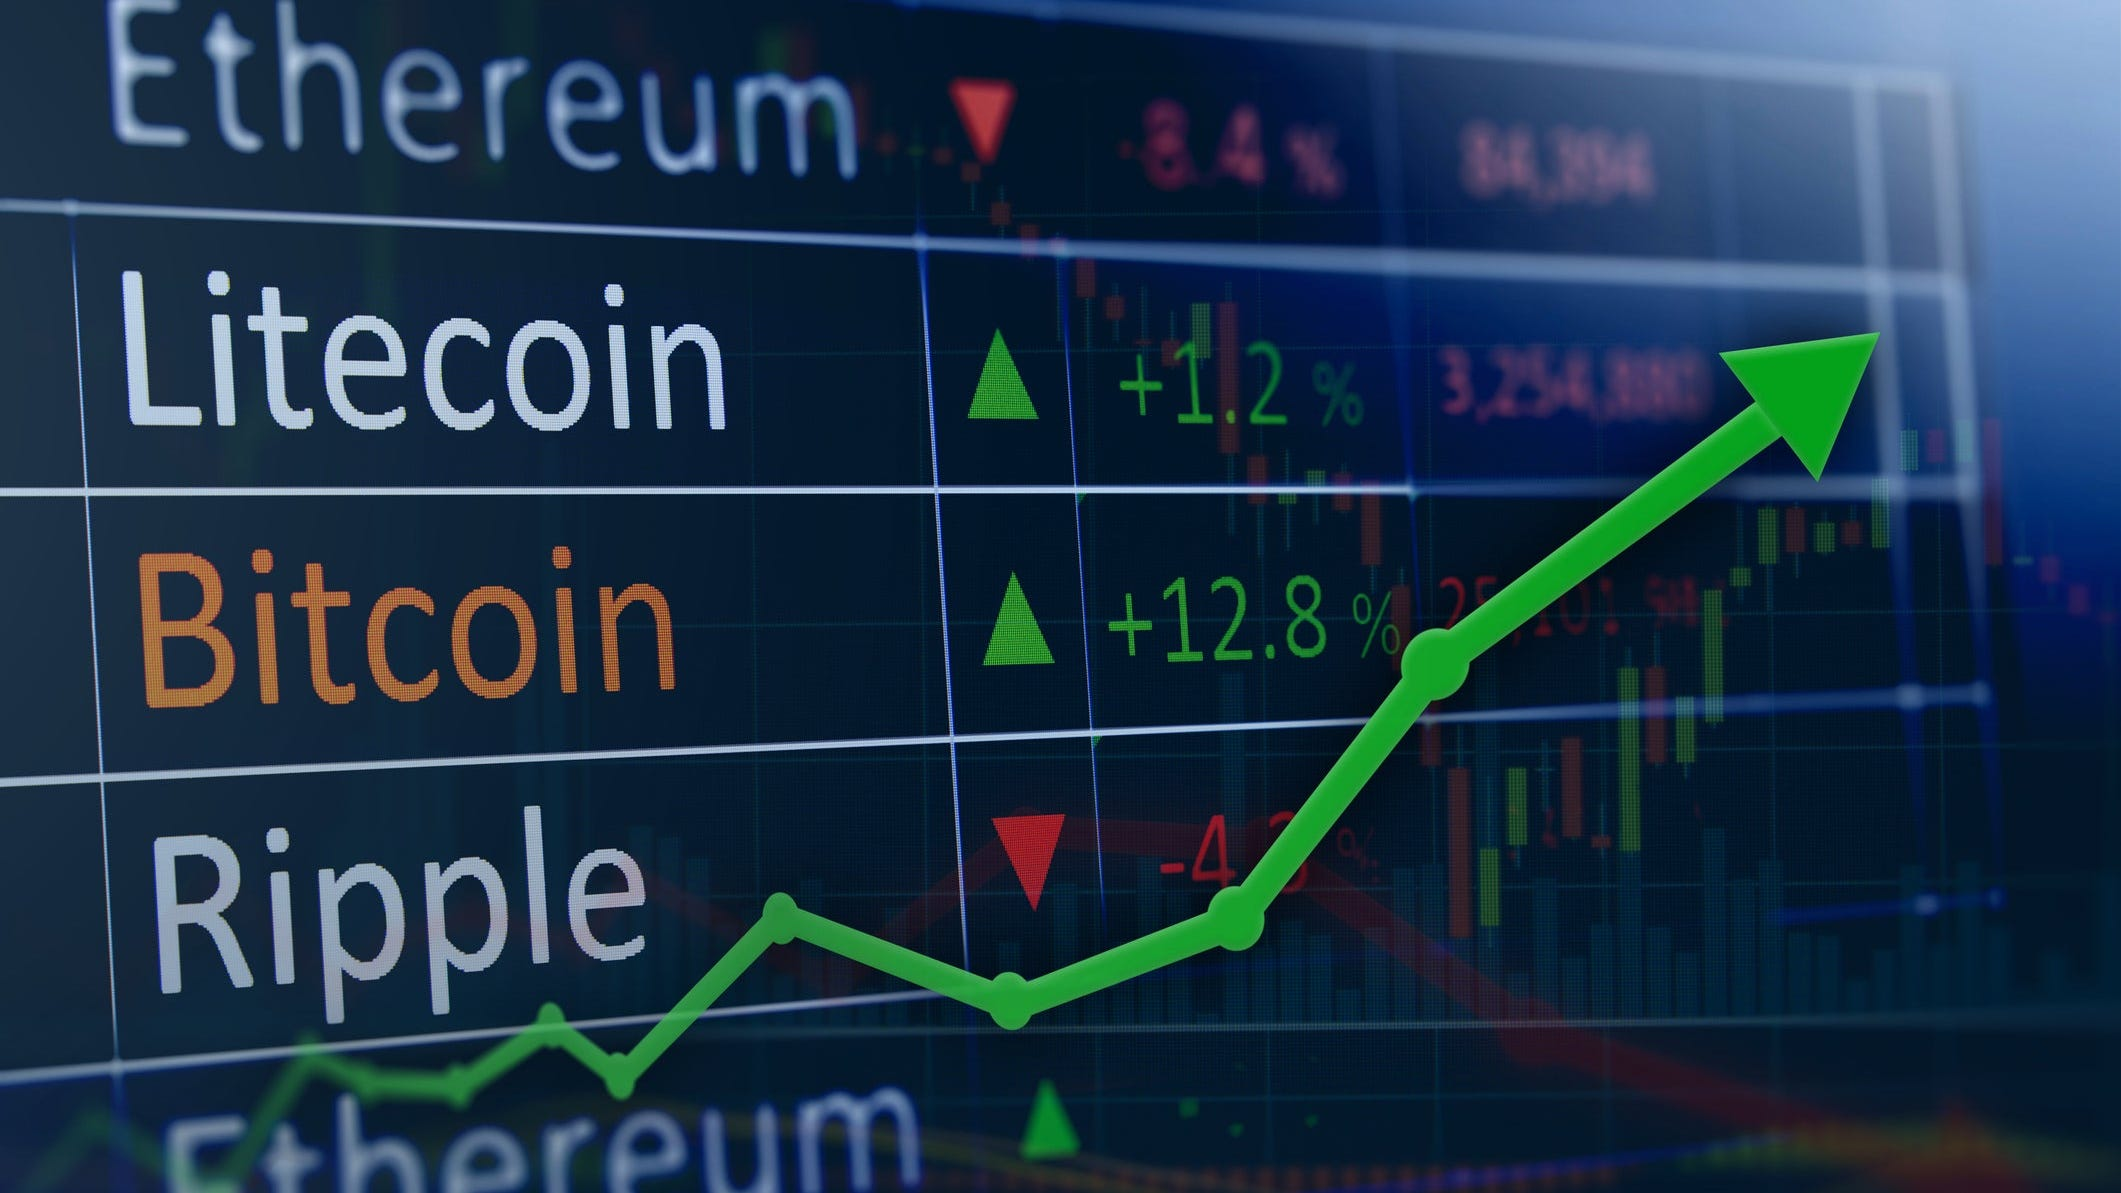 Dogecoin: Price of spoof cryptocurrency tops 10 cents